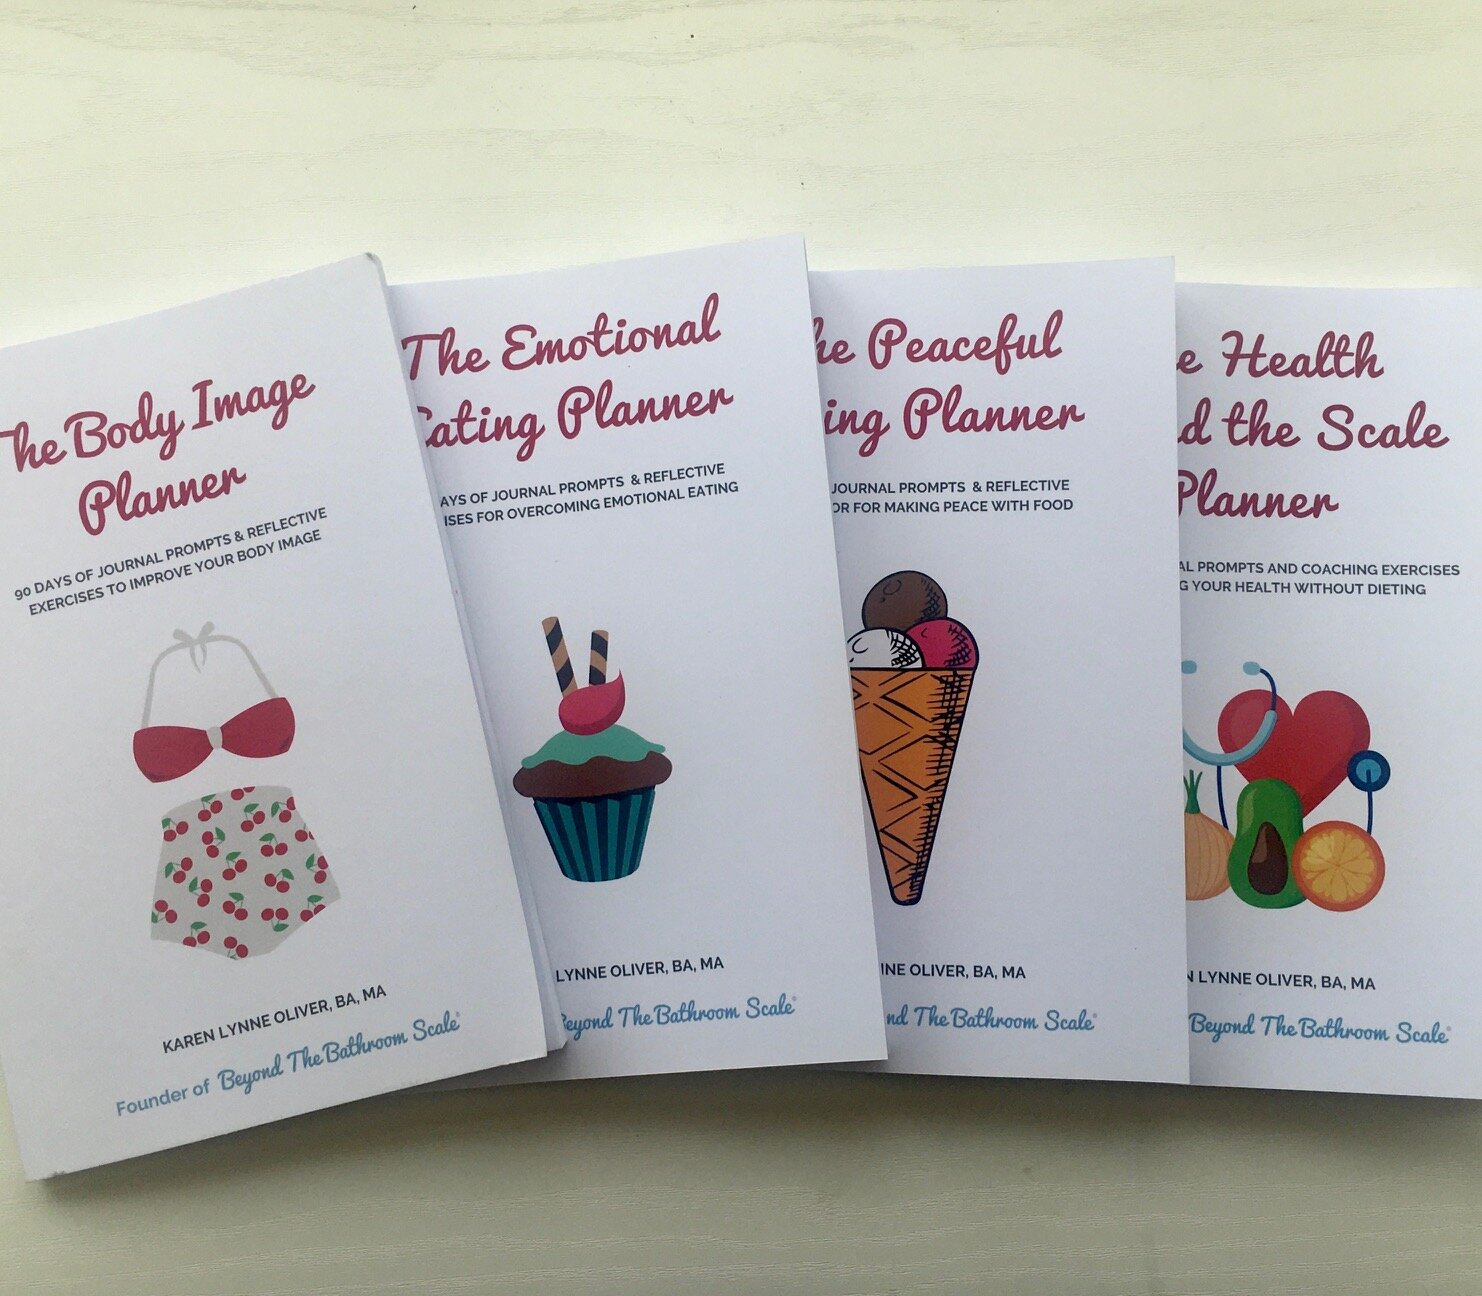 Beyond The Bathroom Scale Help With Body Image Binge Eating And Disordered Eating